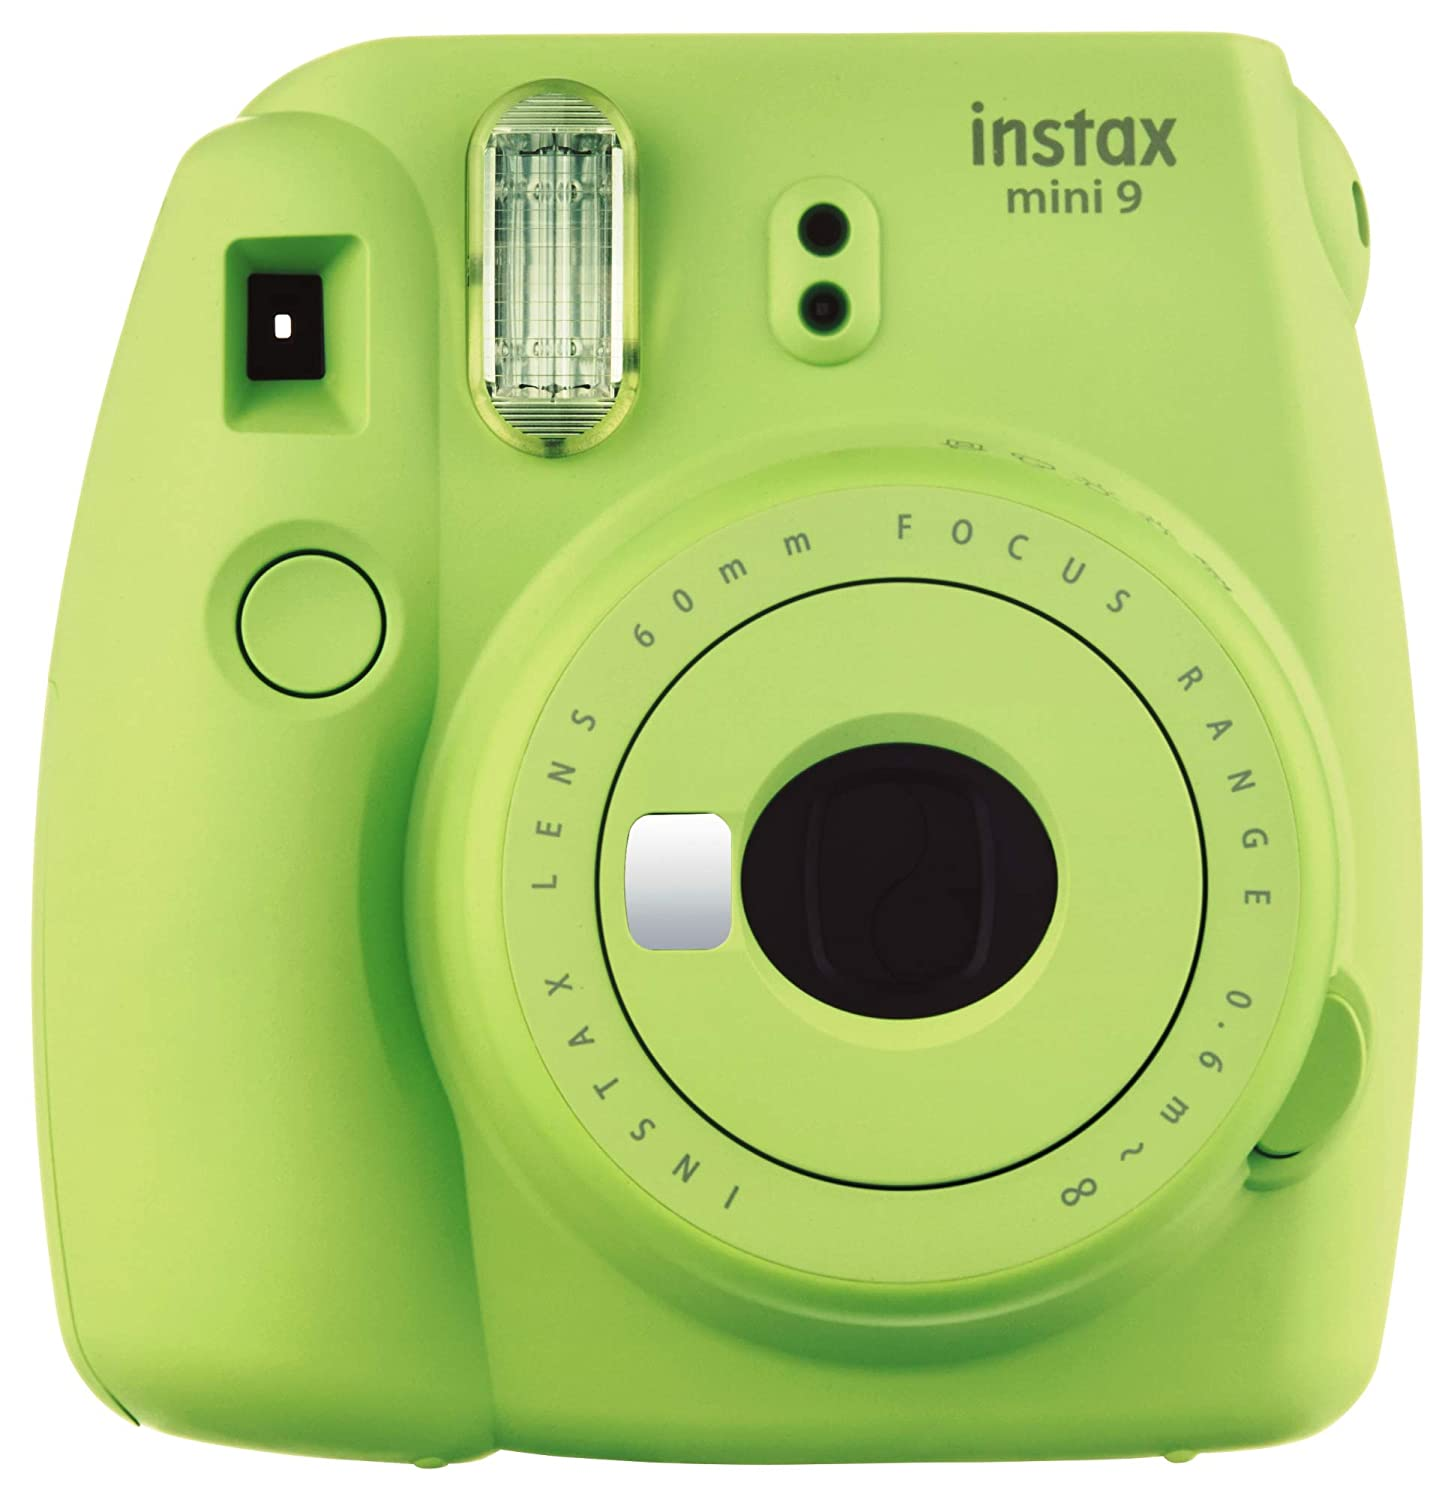 Fujifilm Instax Mini 9 Black Friday Deals 2019